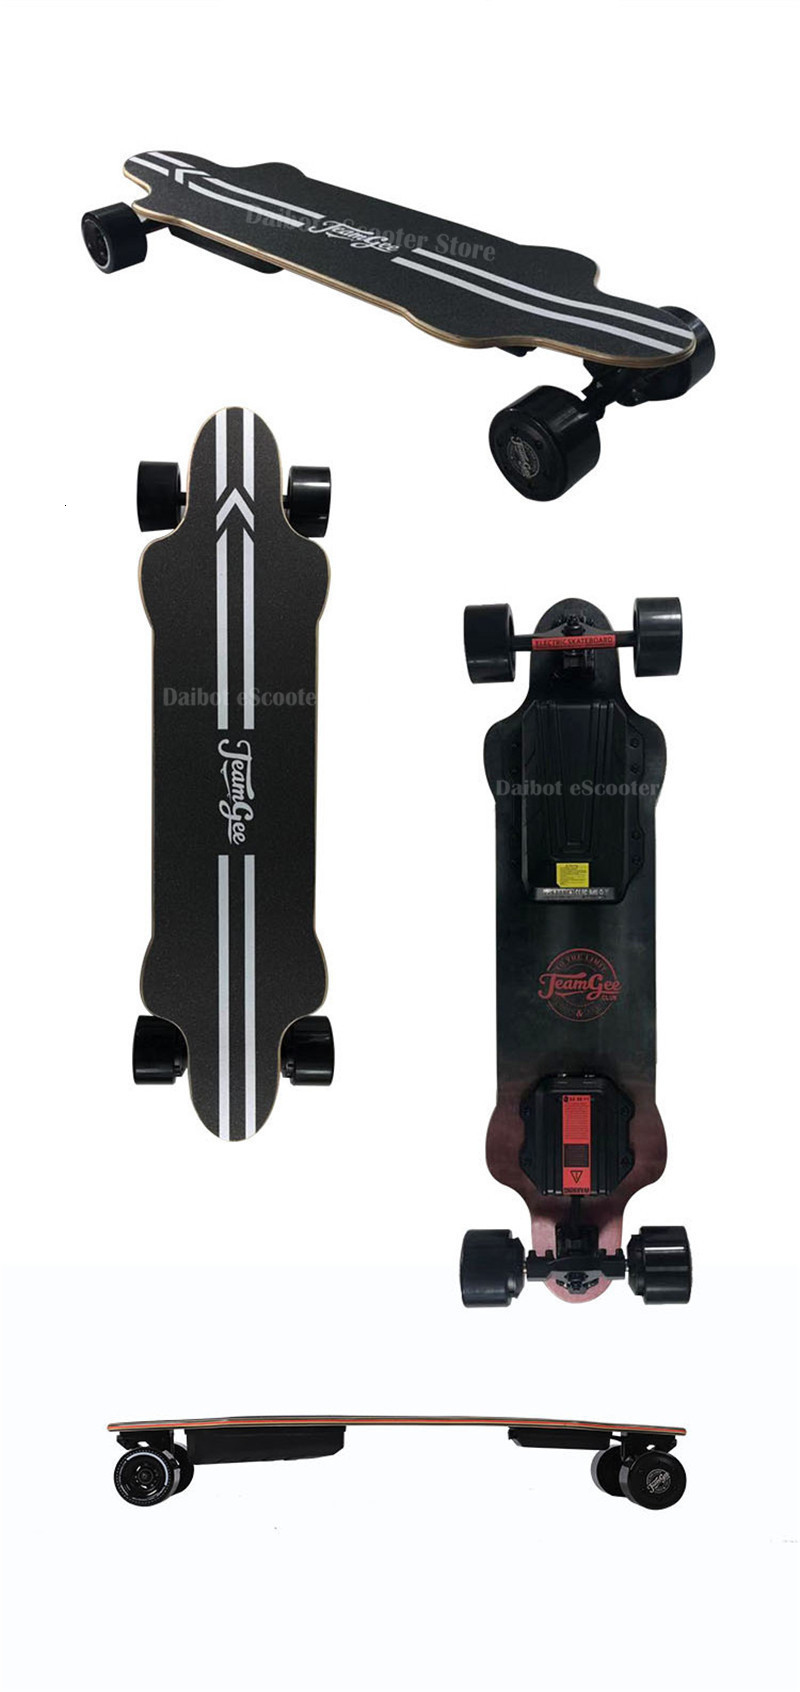 Electric Skateboard For Adult 4 Wheels Electric Scooters Double Drive 600W 36V 40KMH Longboard Electric Skateboard (26)